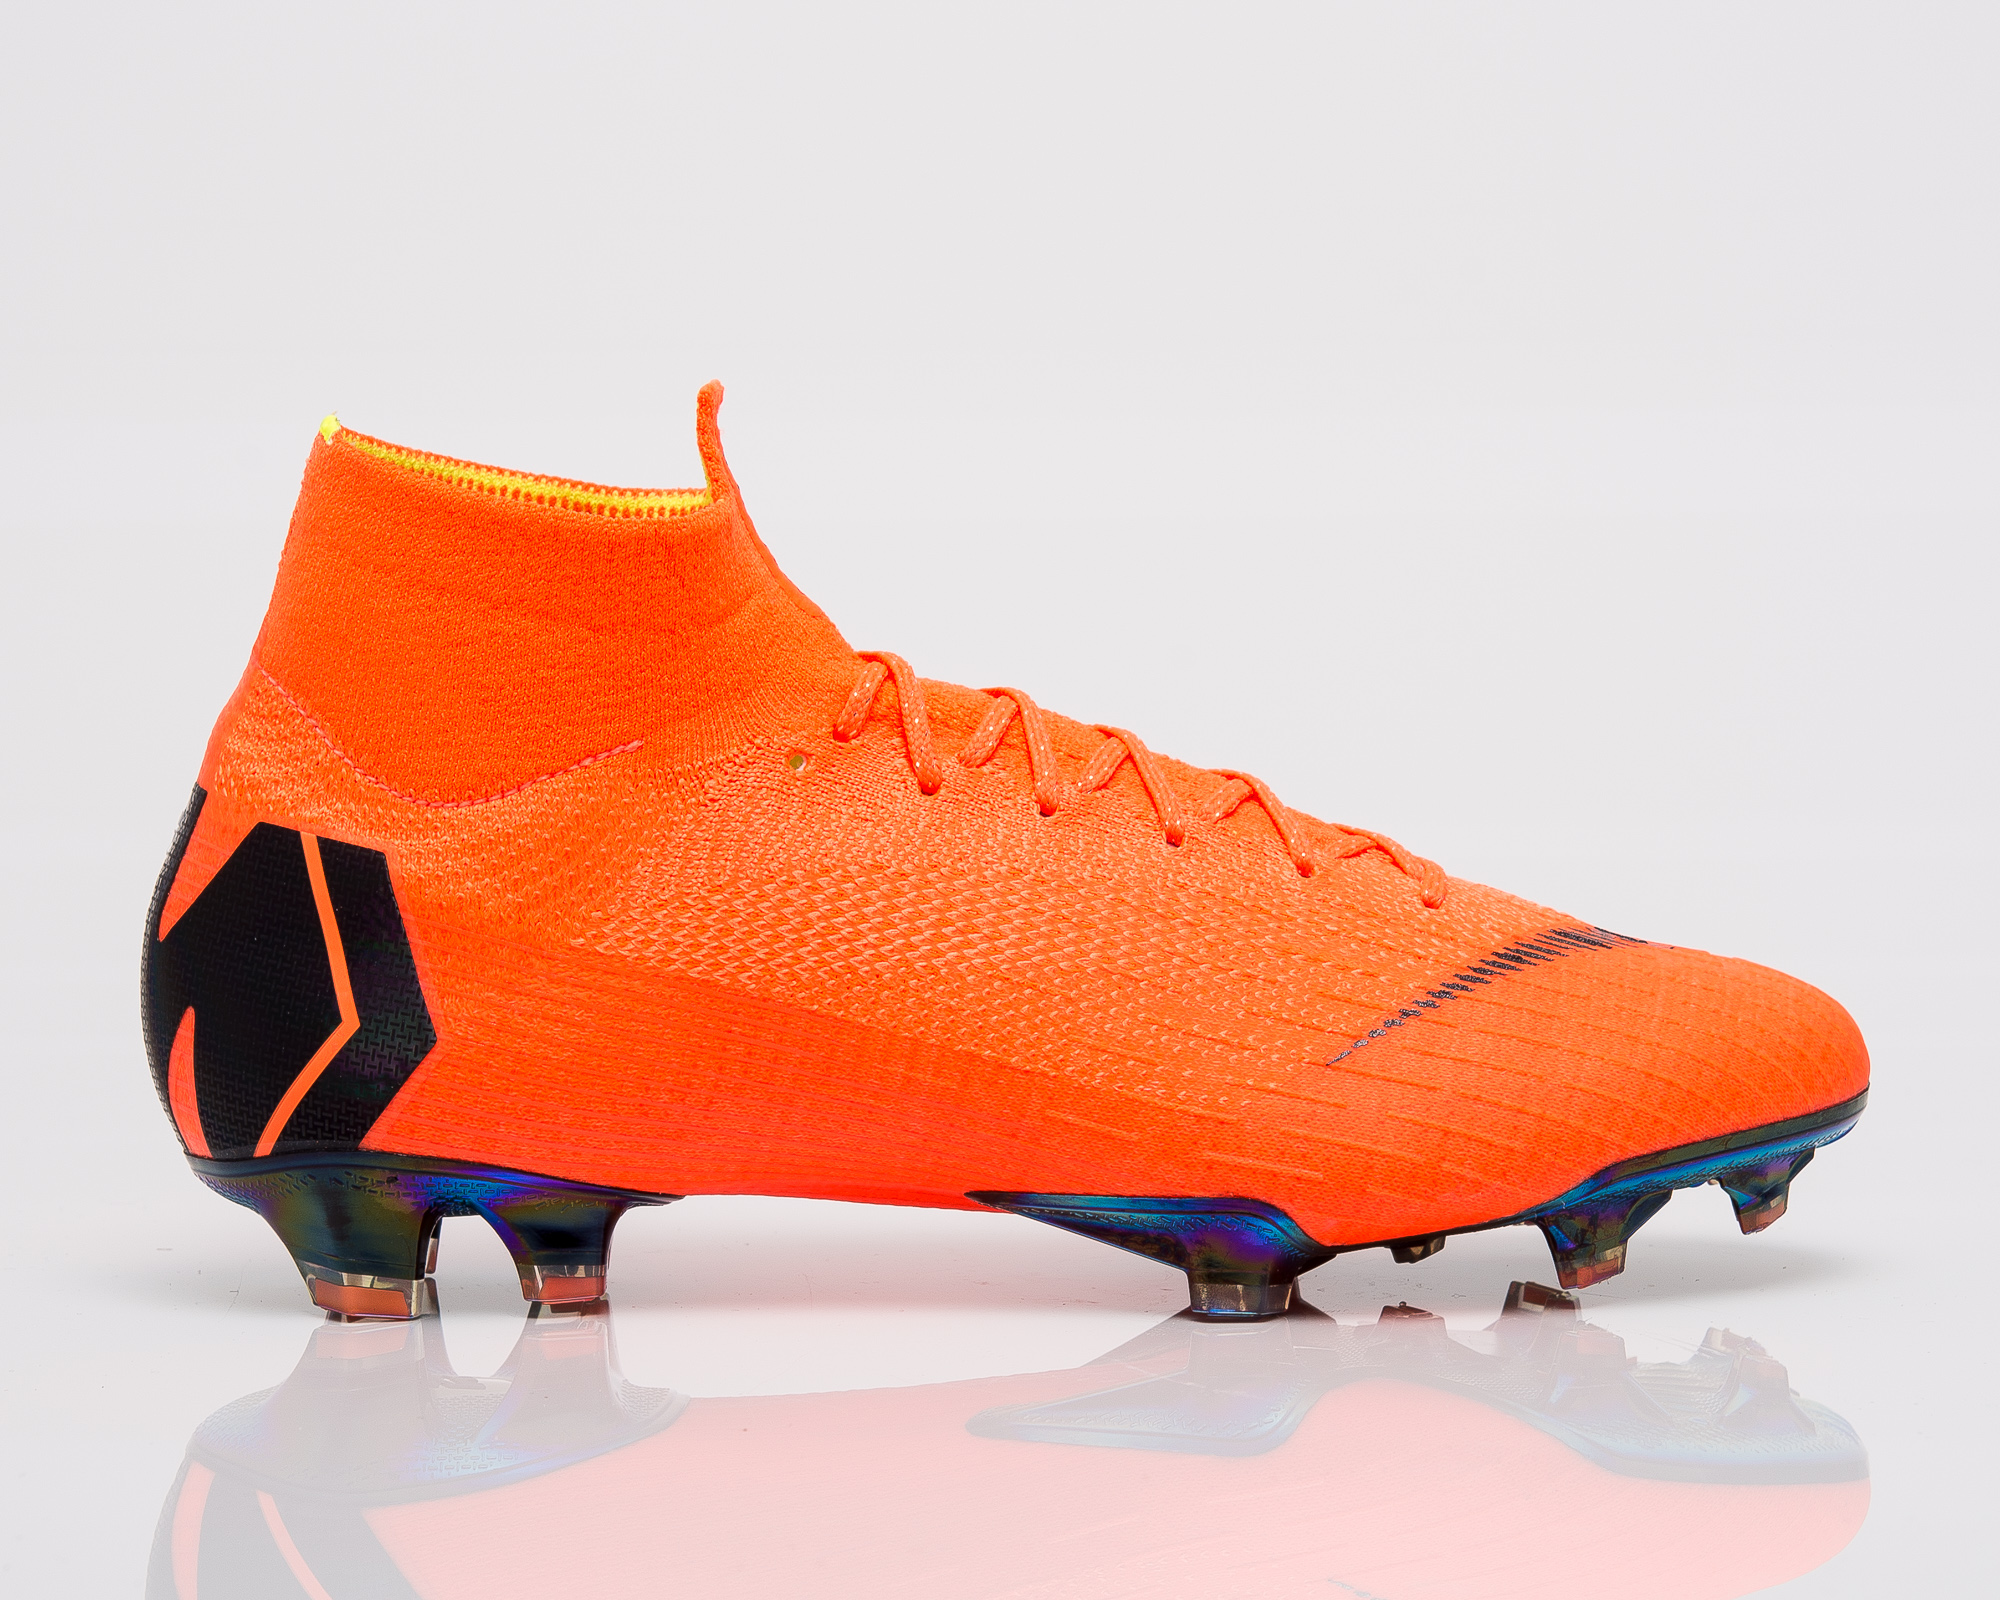 new style b321e 5f13a ... netherlands nike mercurial superfly 360 elite fg 7fed7 1a1ef